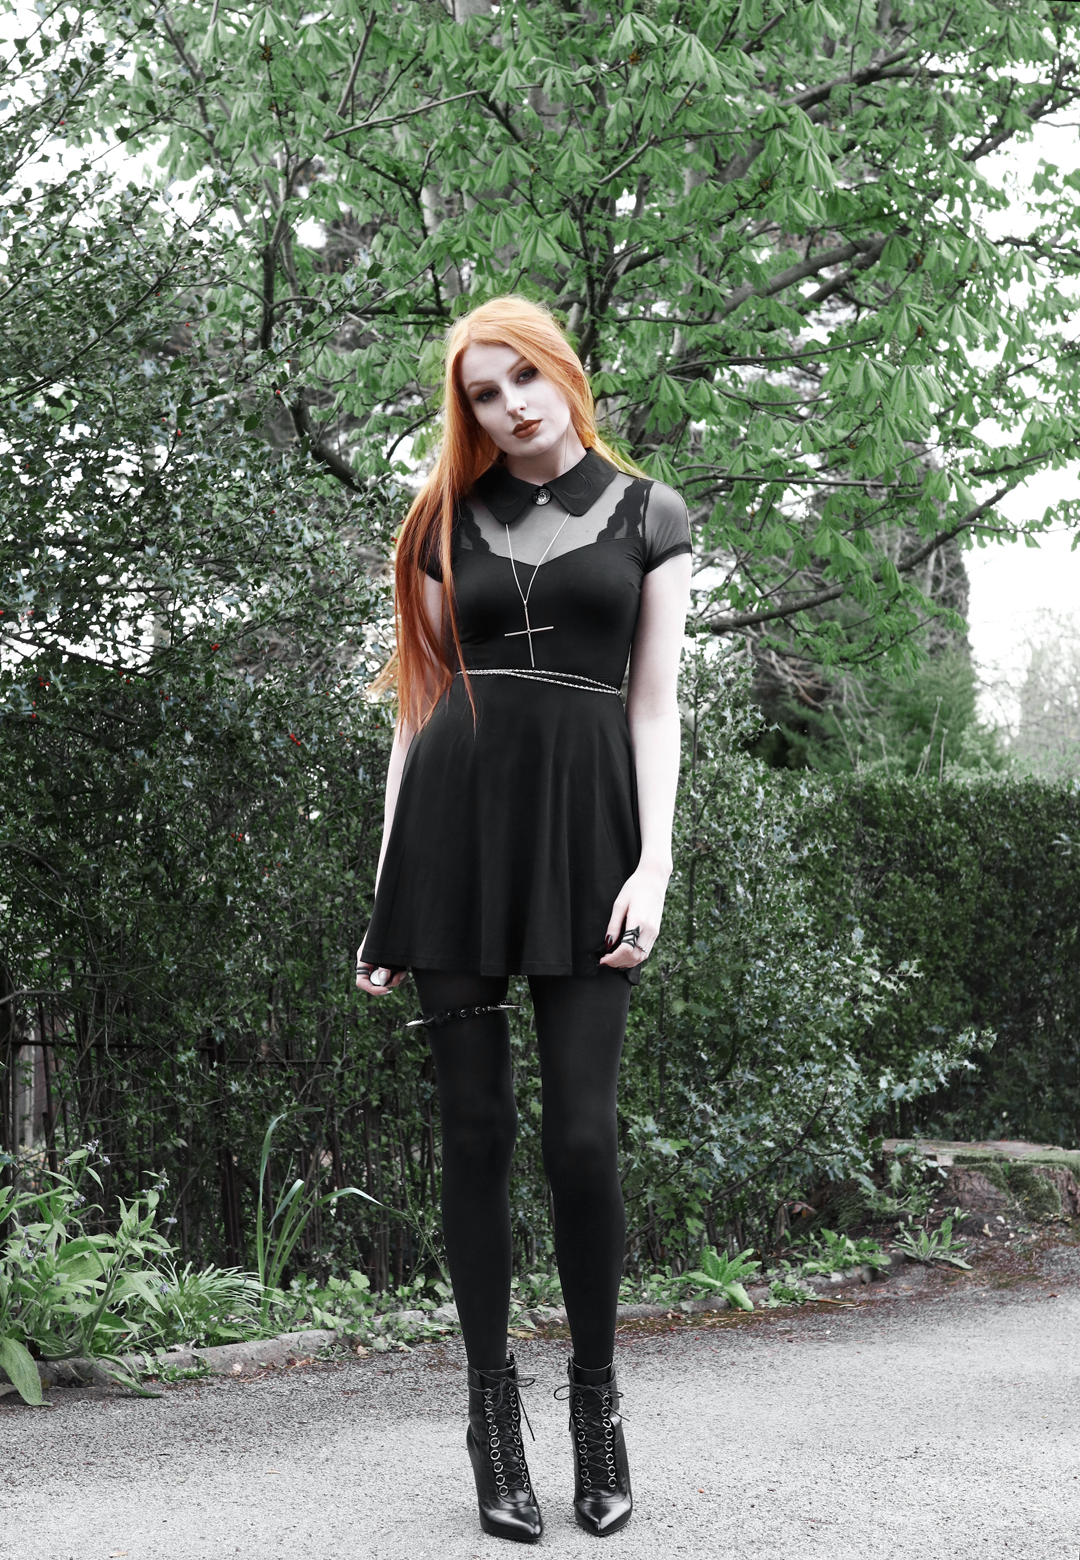 Olivia Emily wears Killstar Dana dress, Kiki Minchin necklace, spiked garter, Saint Laurent Fetish boots YSL SLP